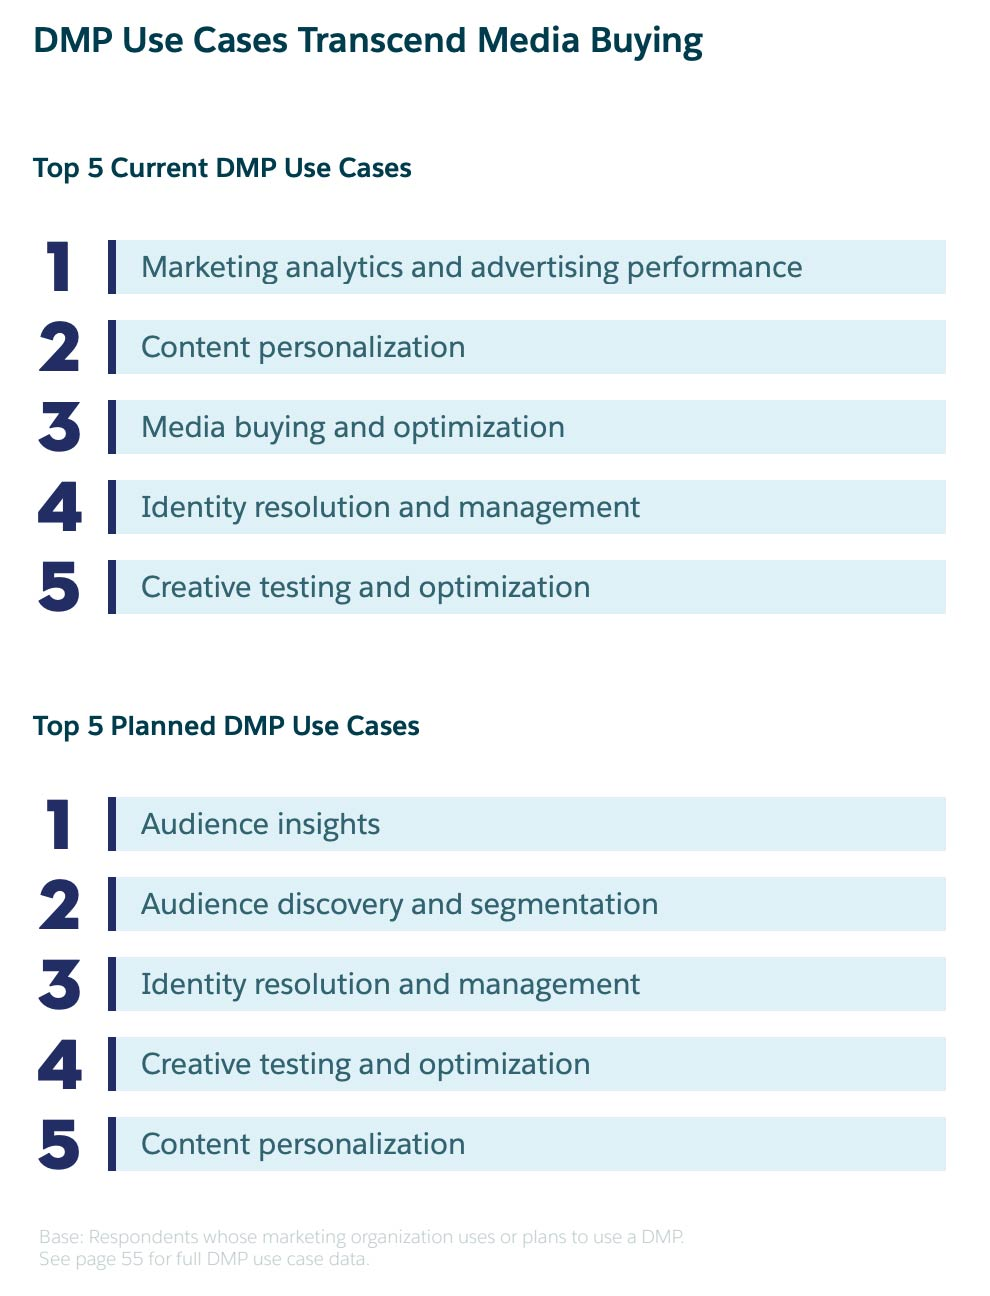 APAC Marketers Gain Personalization with DMP's: Salesforce